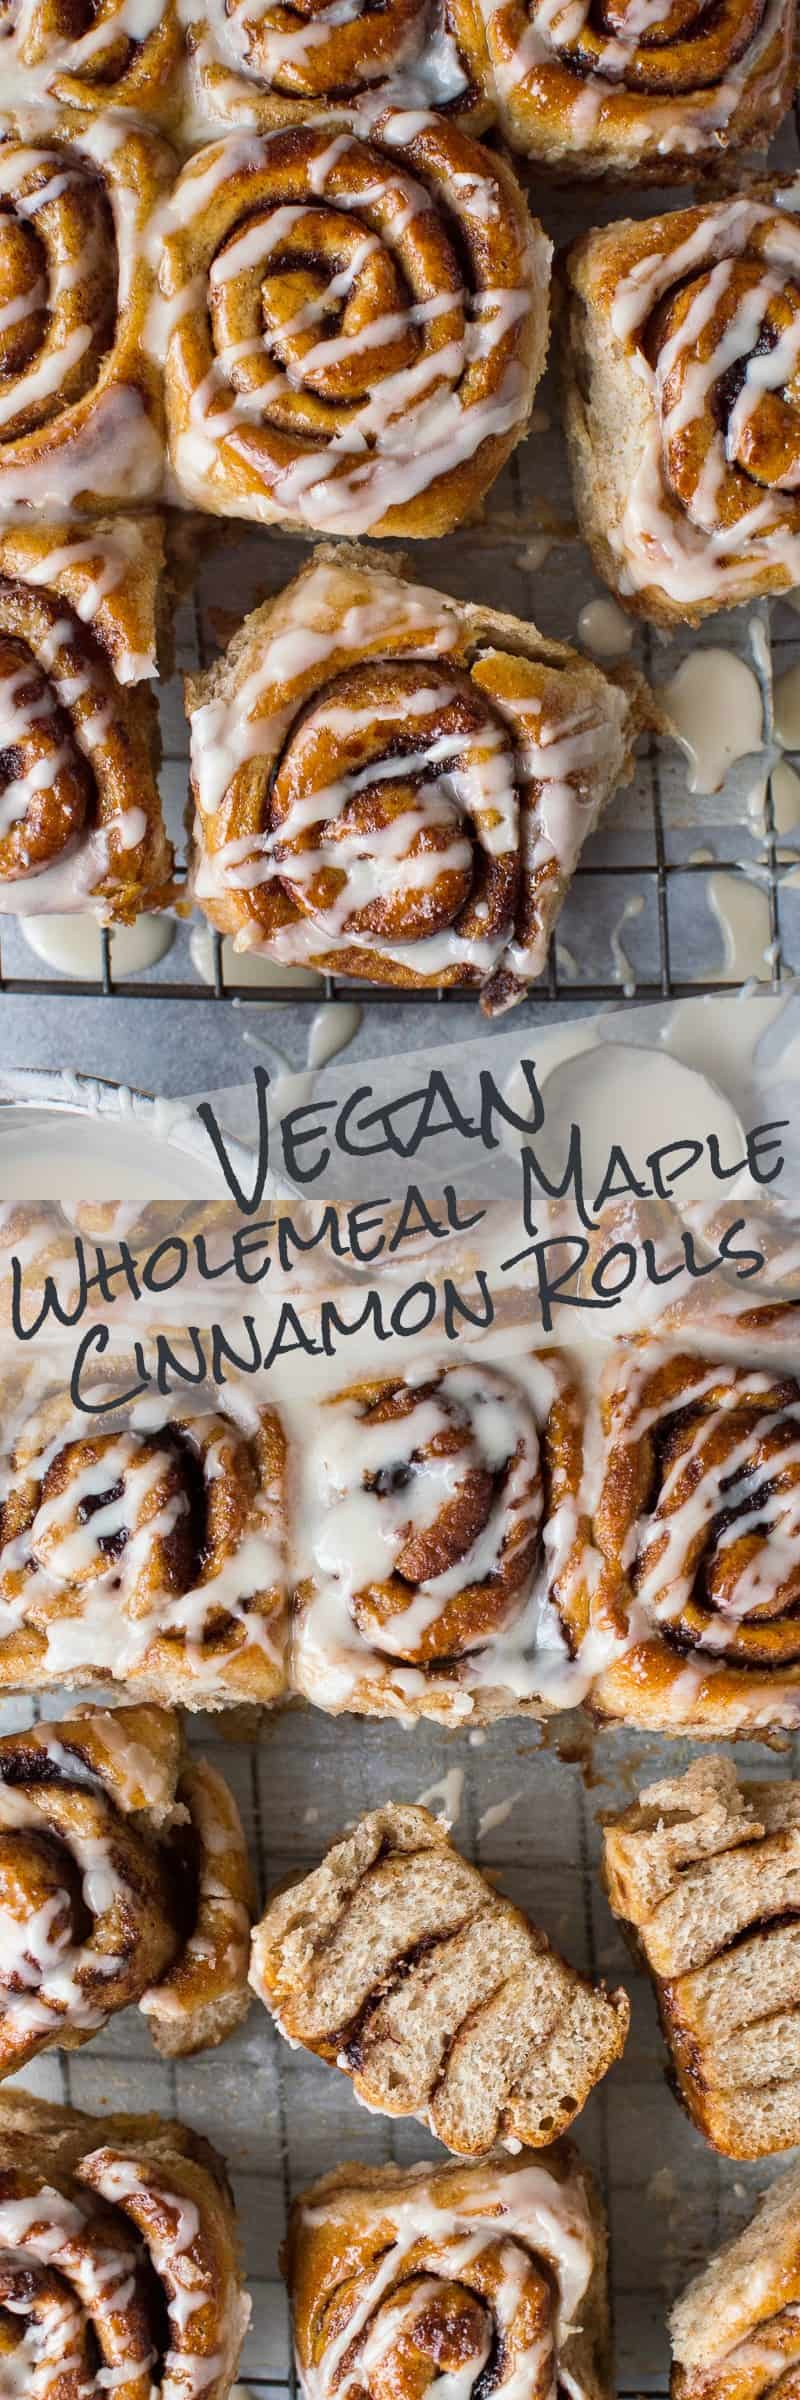 Maple cinnamon rolls pinterest image